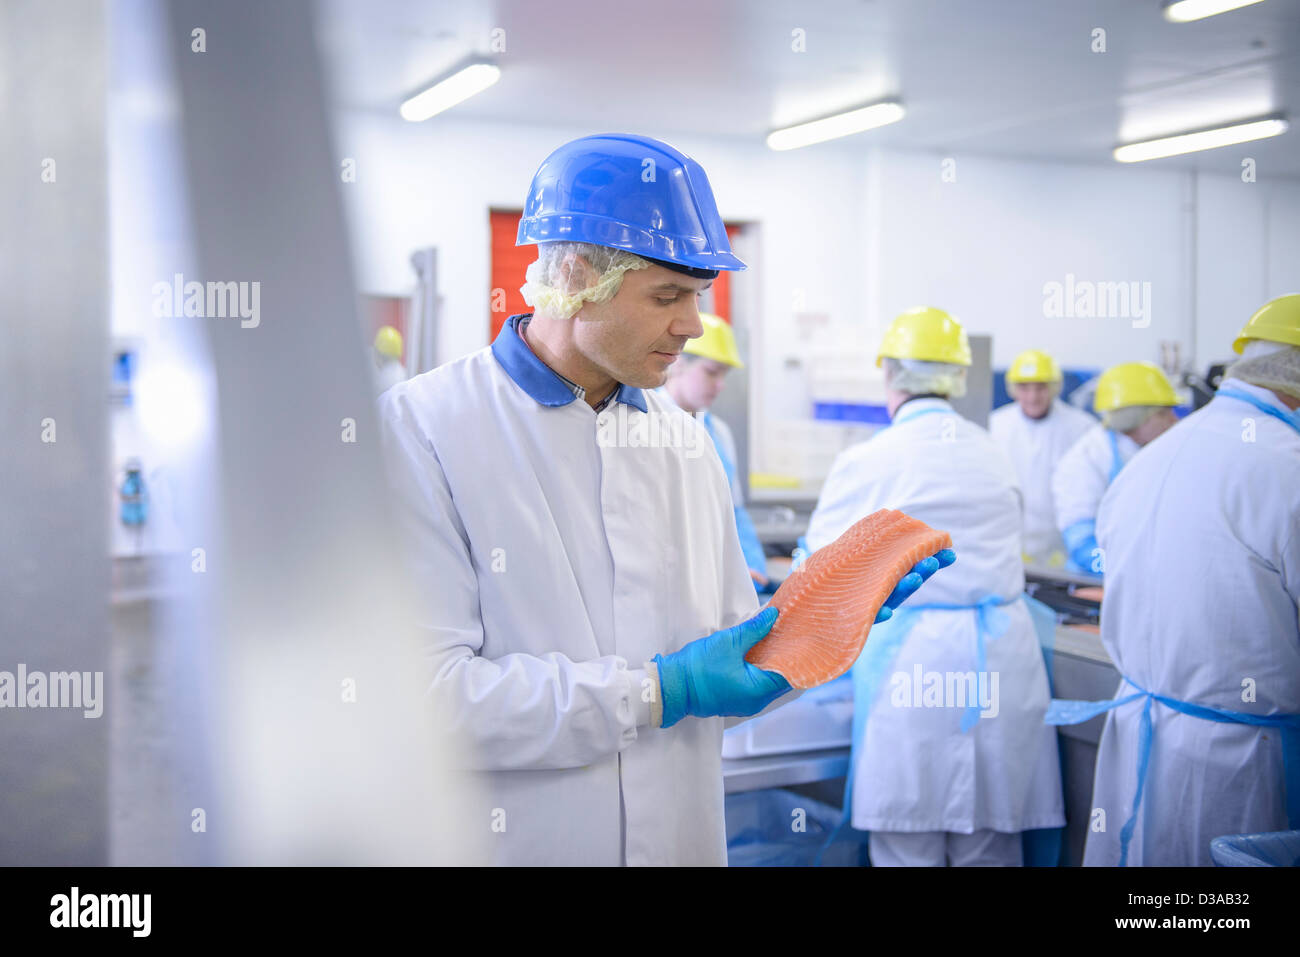 Worker inspecting salmon fillet in food factory - Stock Image